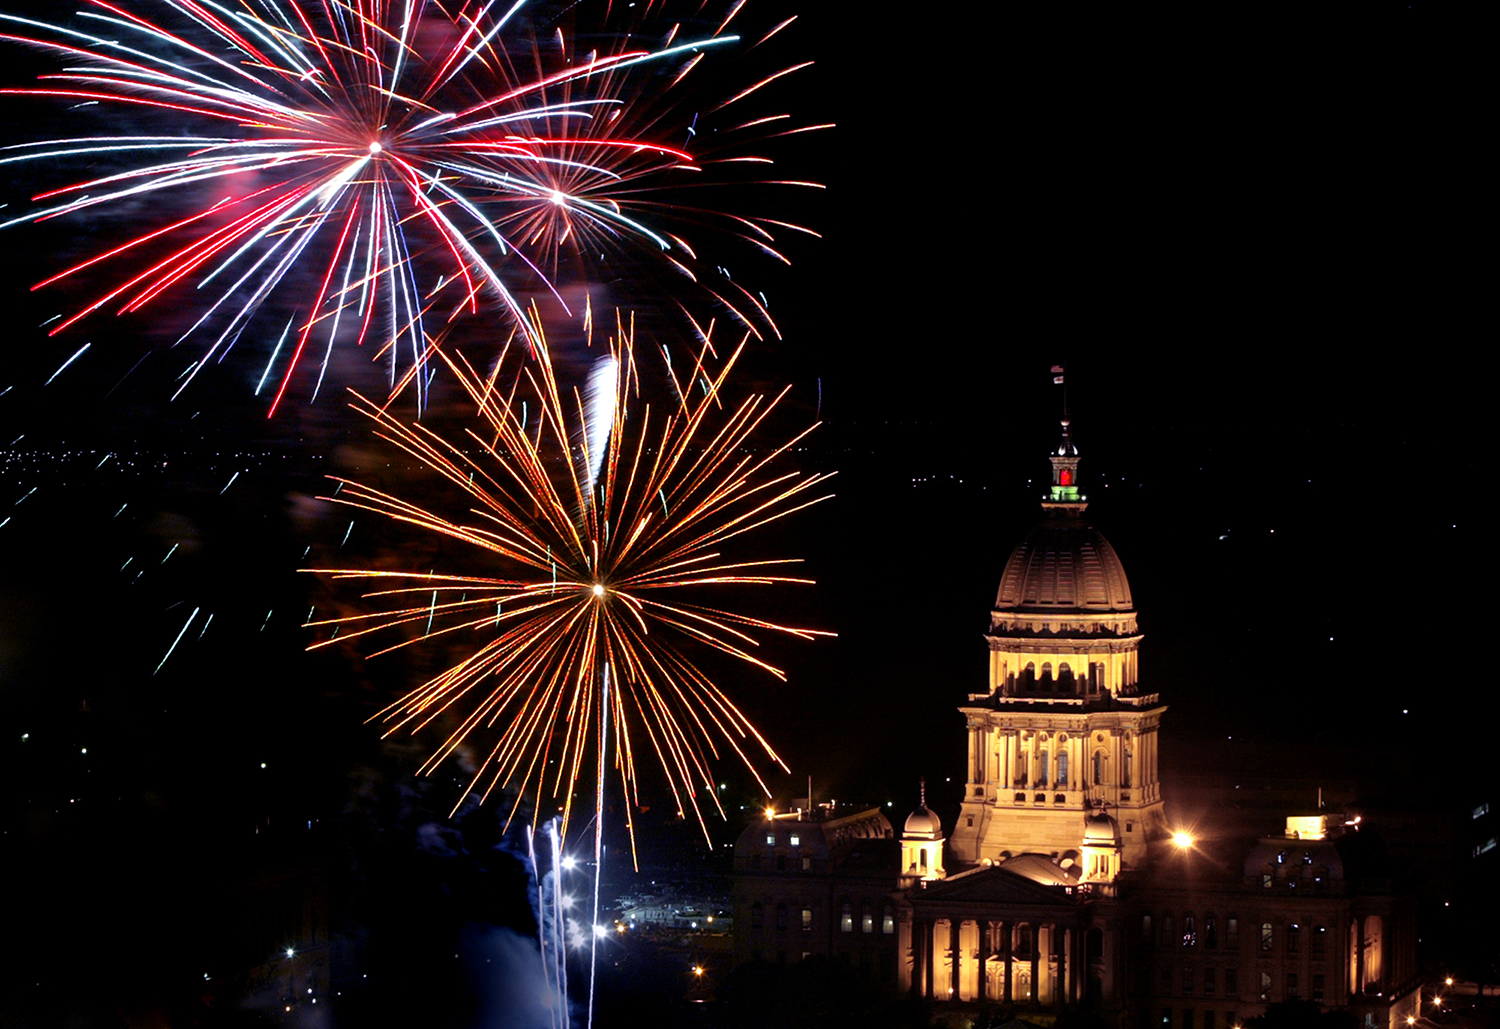 Fireworks light up the night in front of the Illinois State Capitol building celebrating the Forth of July.Fireworks light up the night in front of the Illinois State Capitol building celebrating the Forth of July.